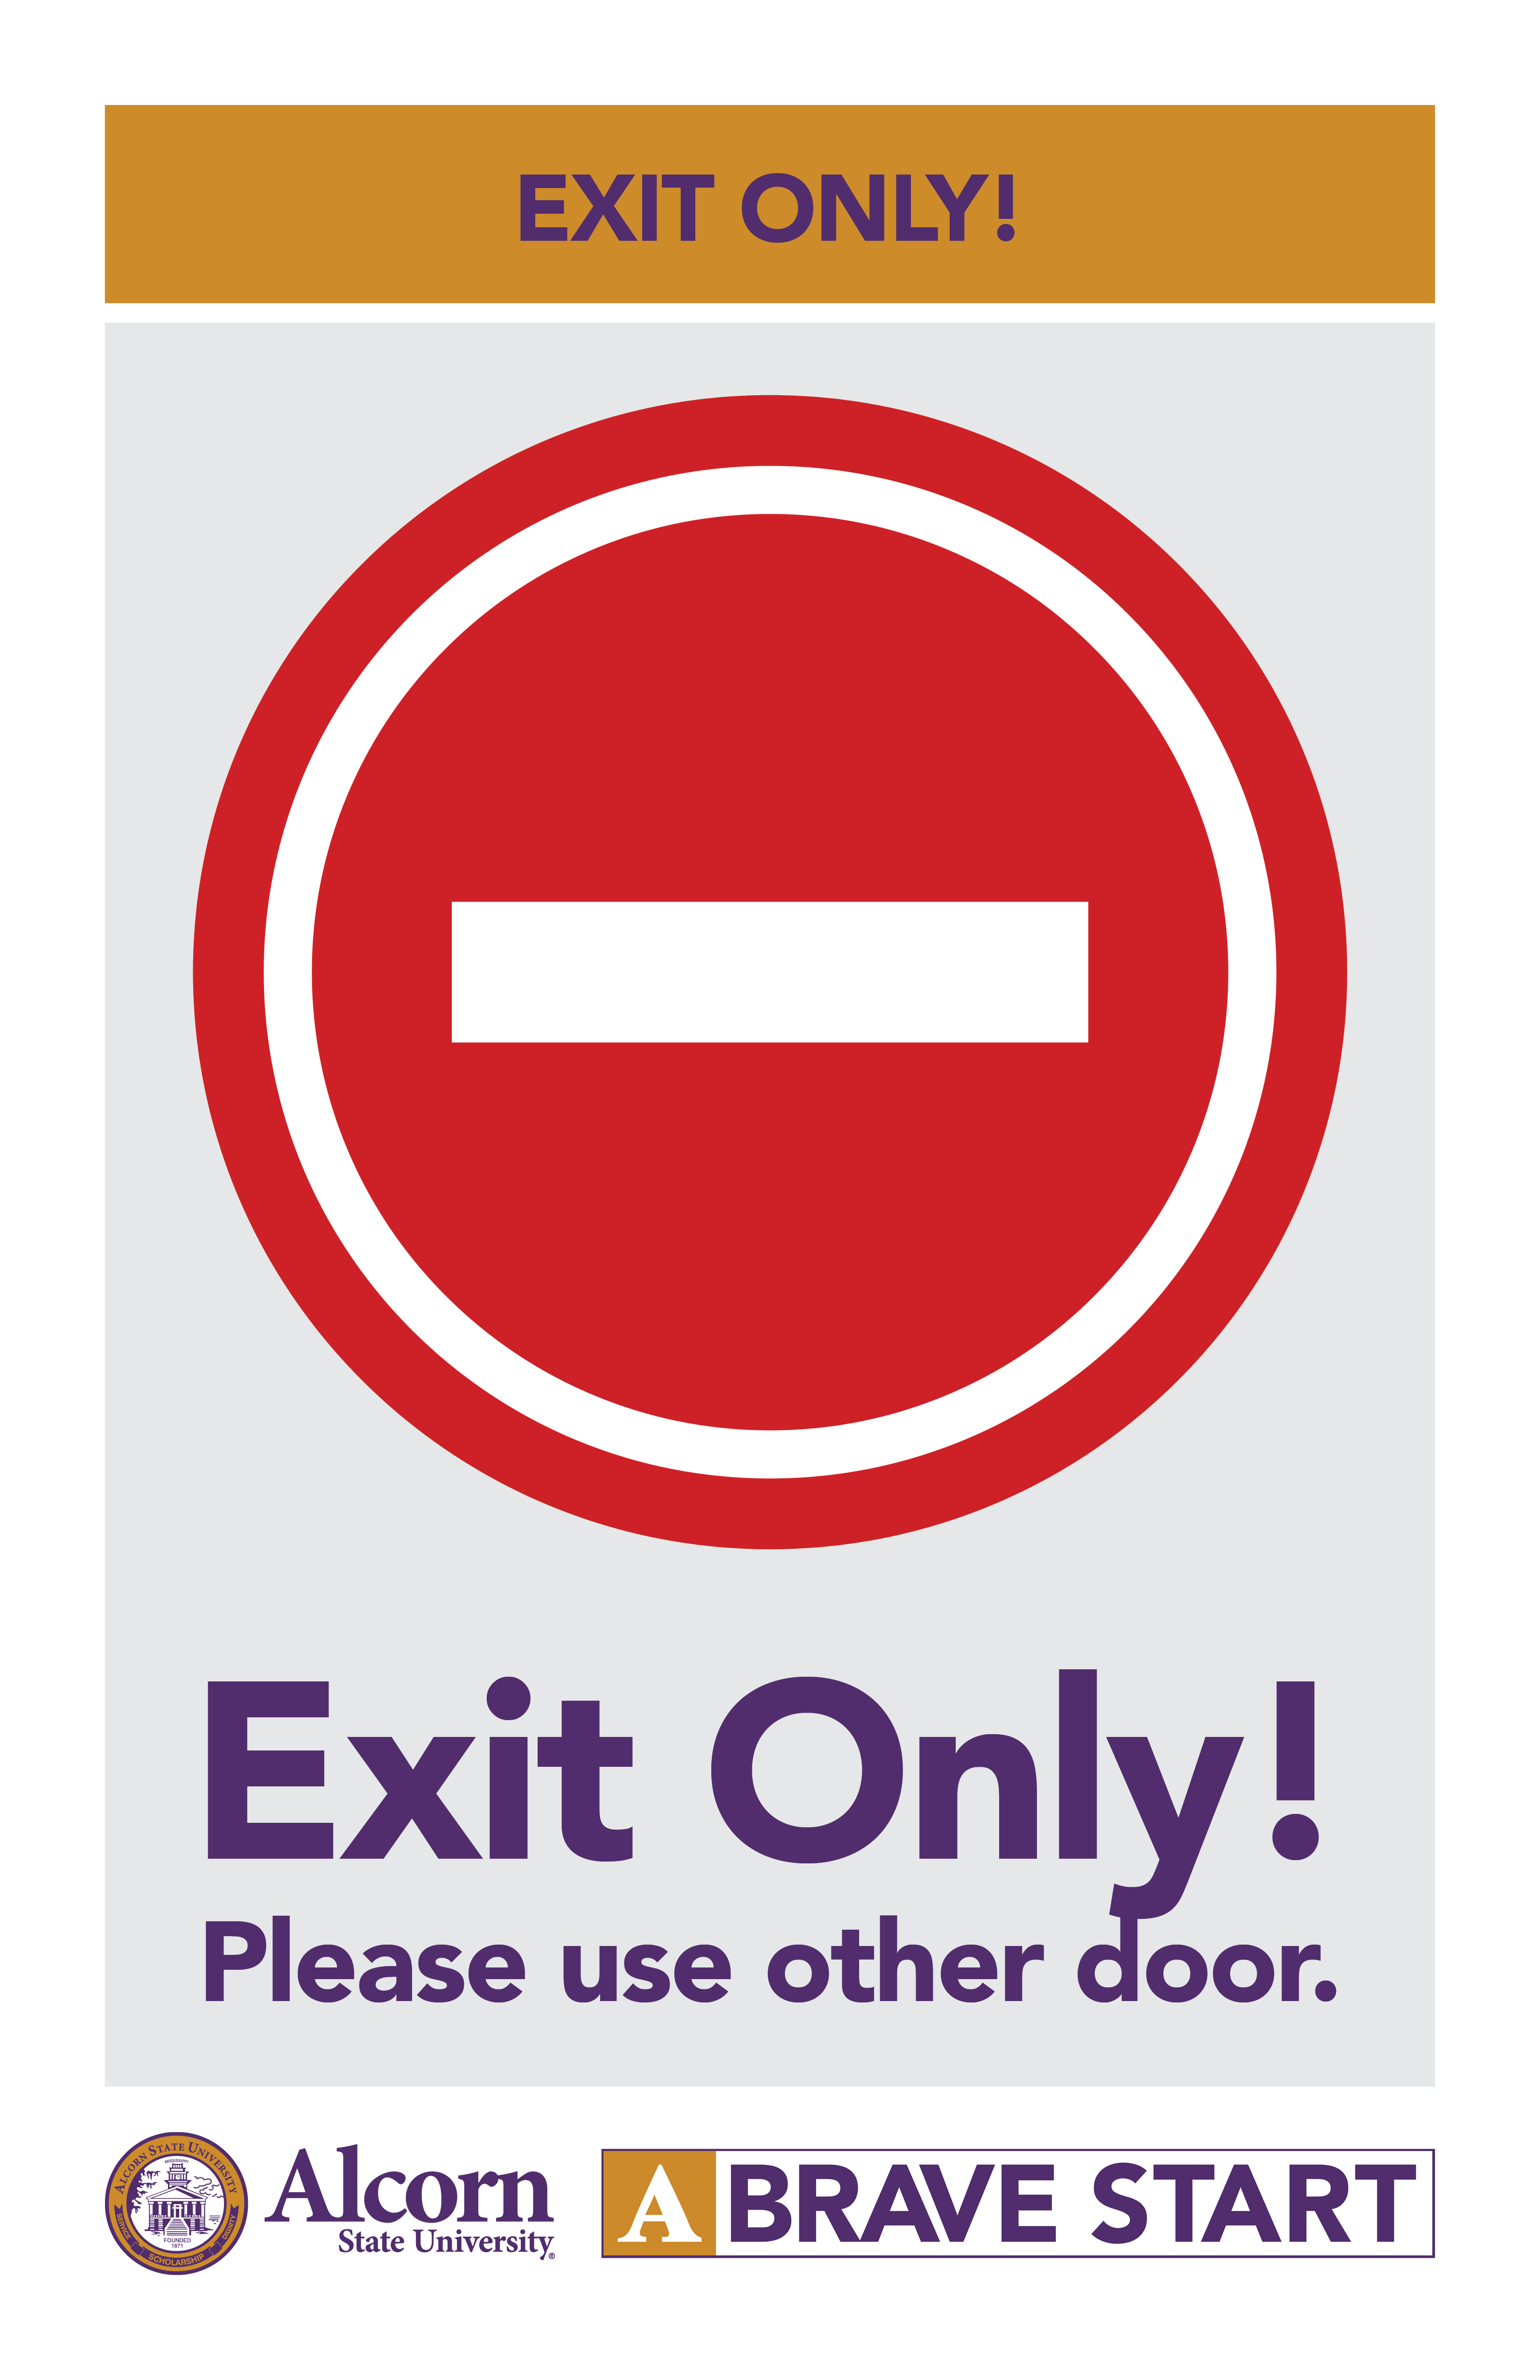 EXIT ONLY! (Picture of no entry red circle) Exit Only! Please use other door. (Alcorn logo mark. A Brave Start logo mark.)